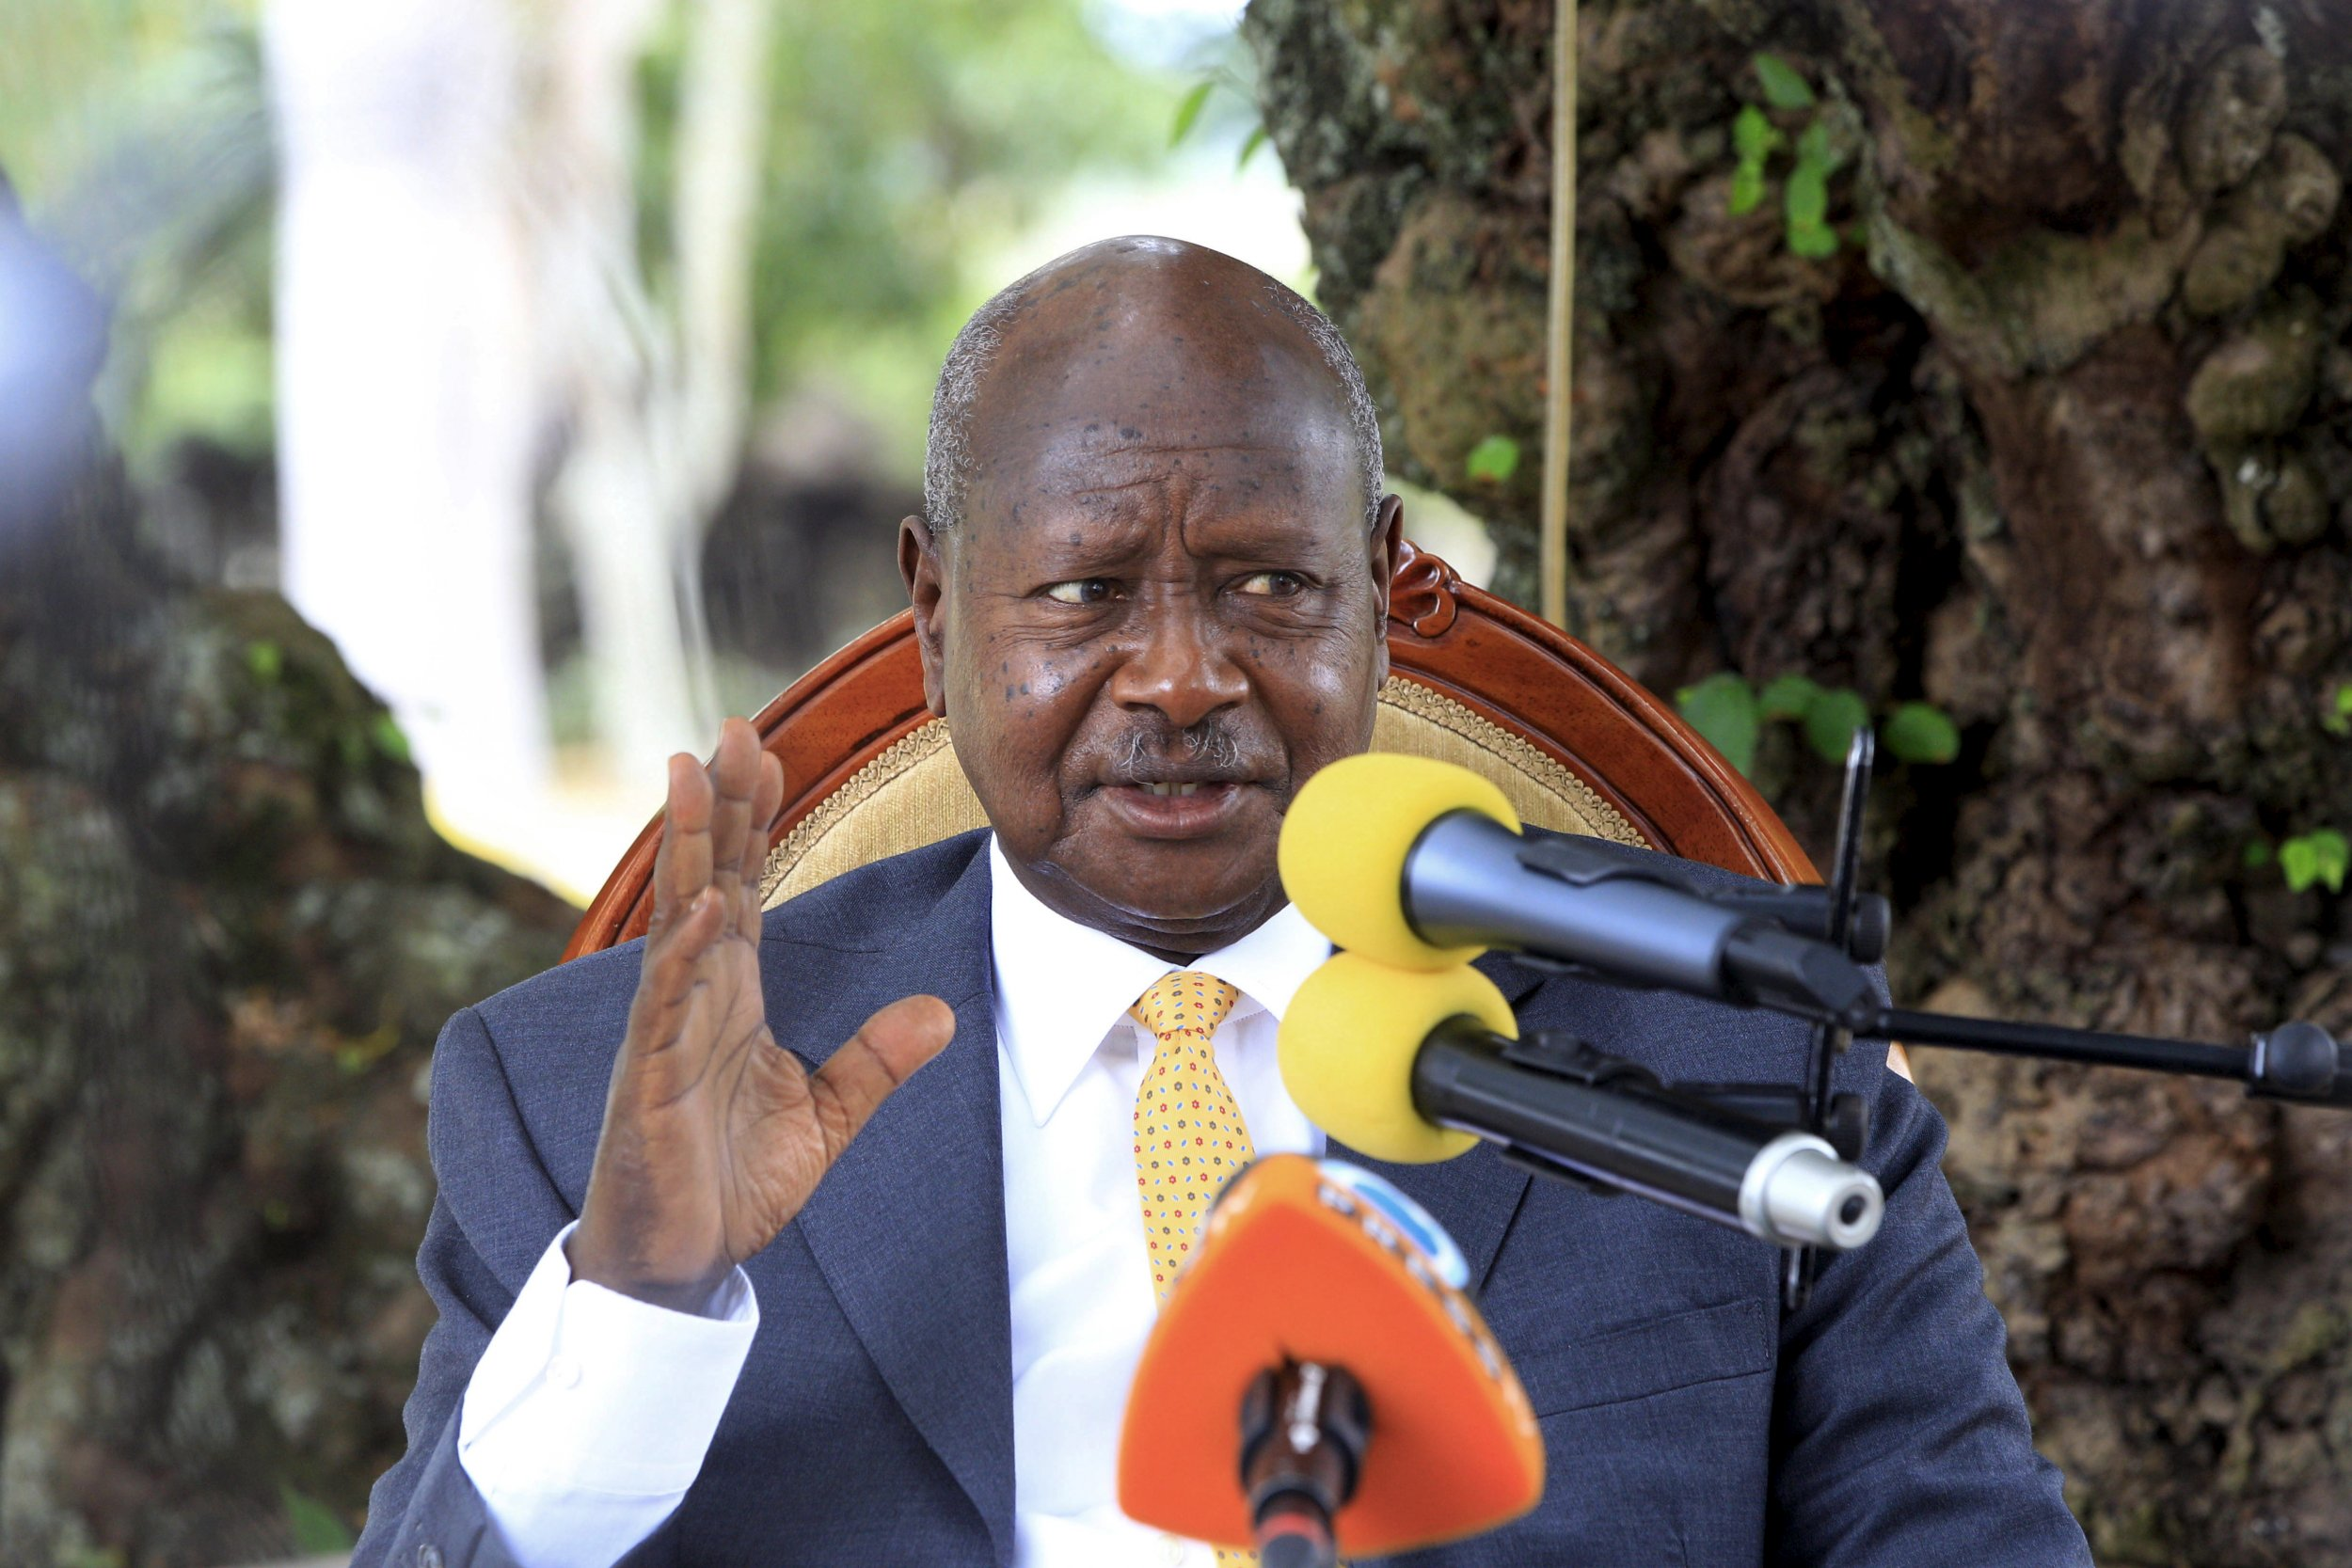 Uganda's president Yoweri Museveni addresses the nation.